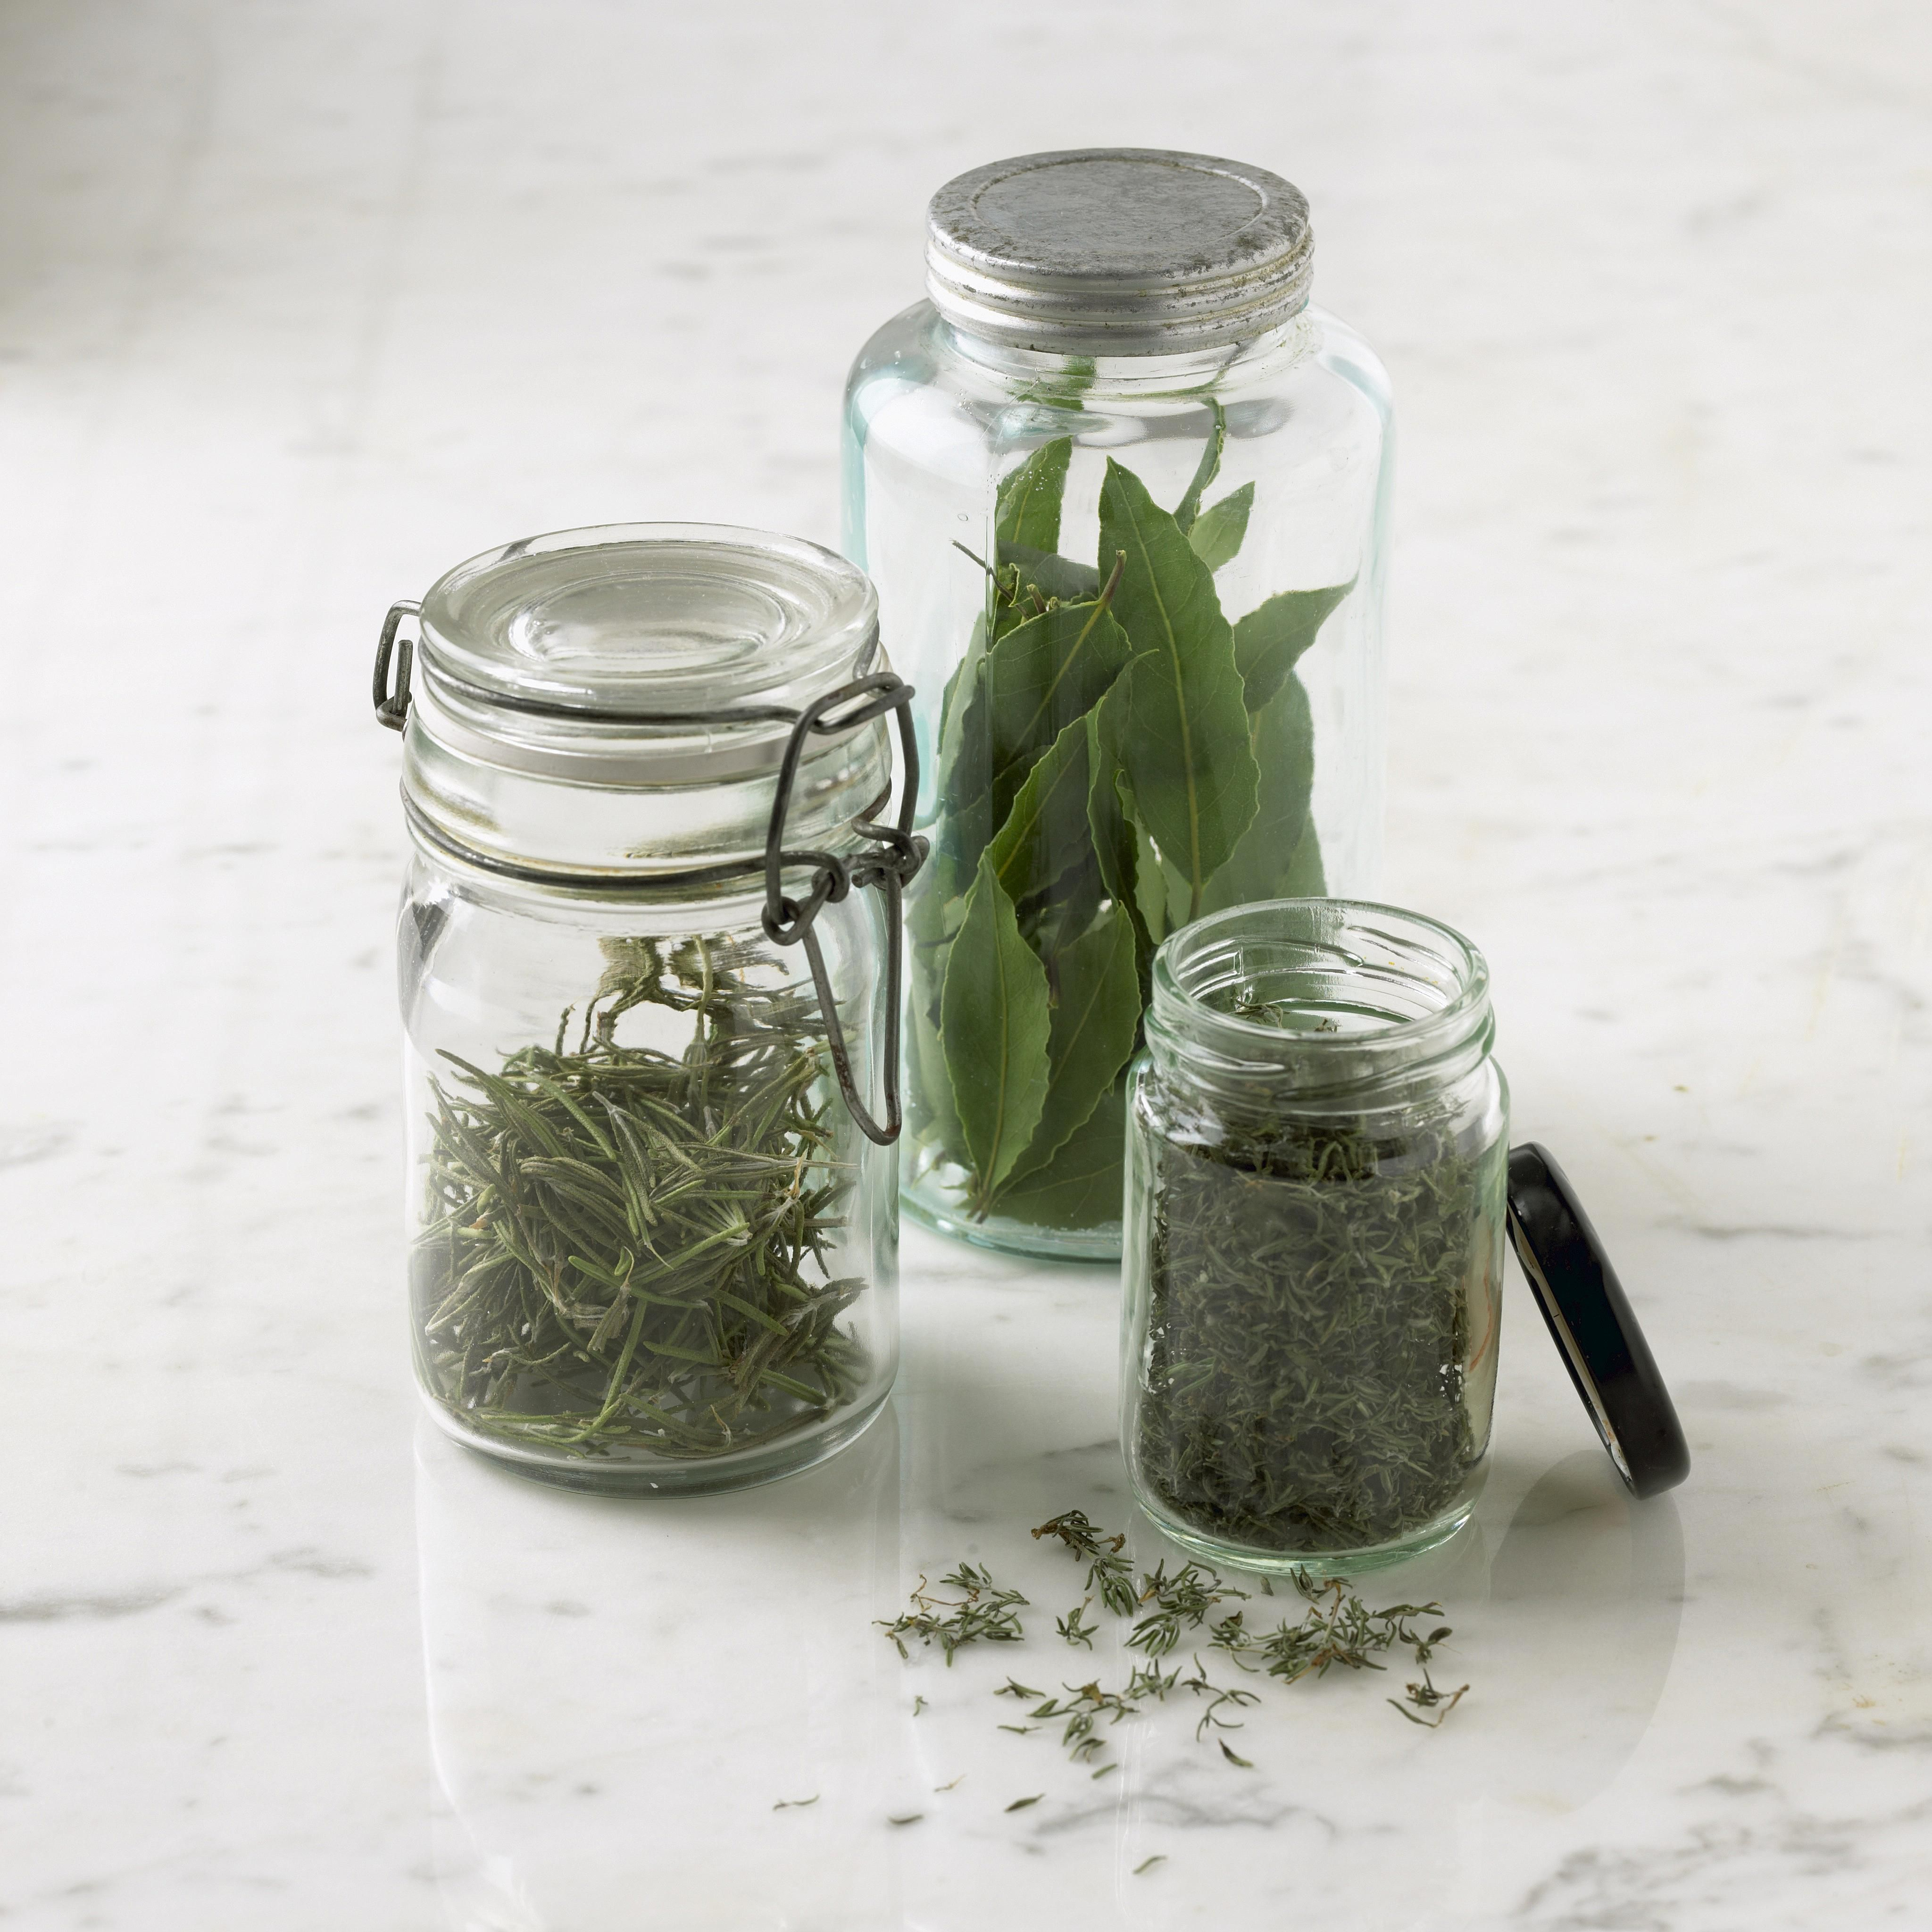 Savory Herb Seasoning Mix Recipes